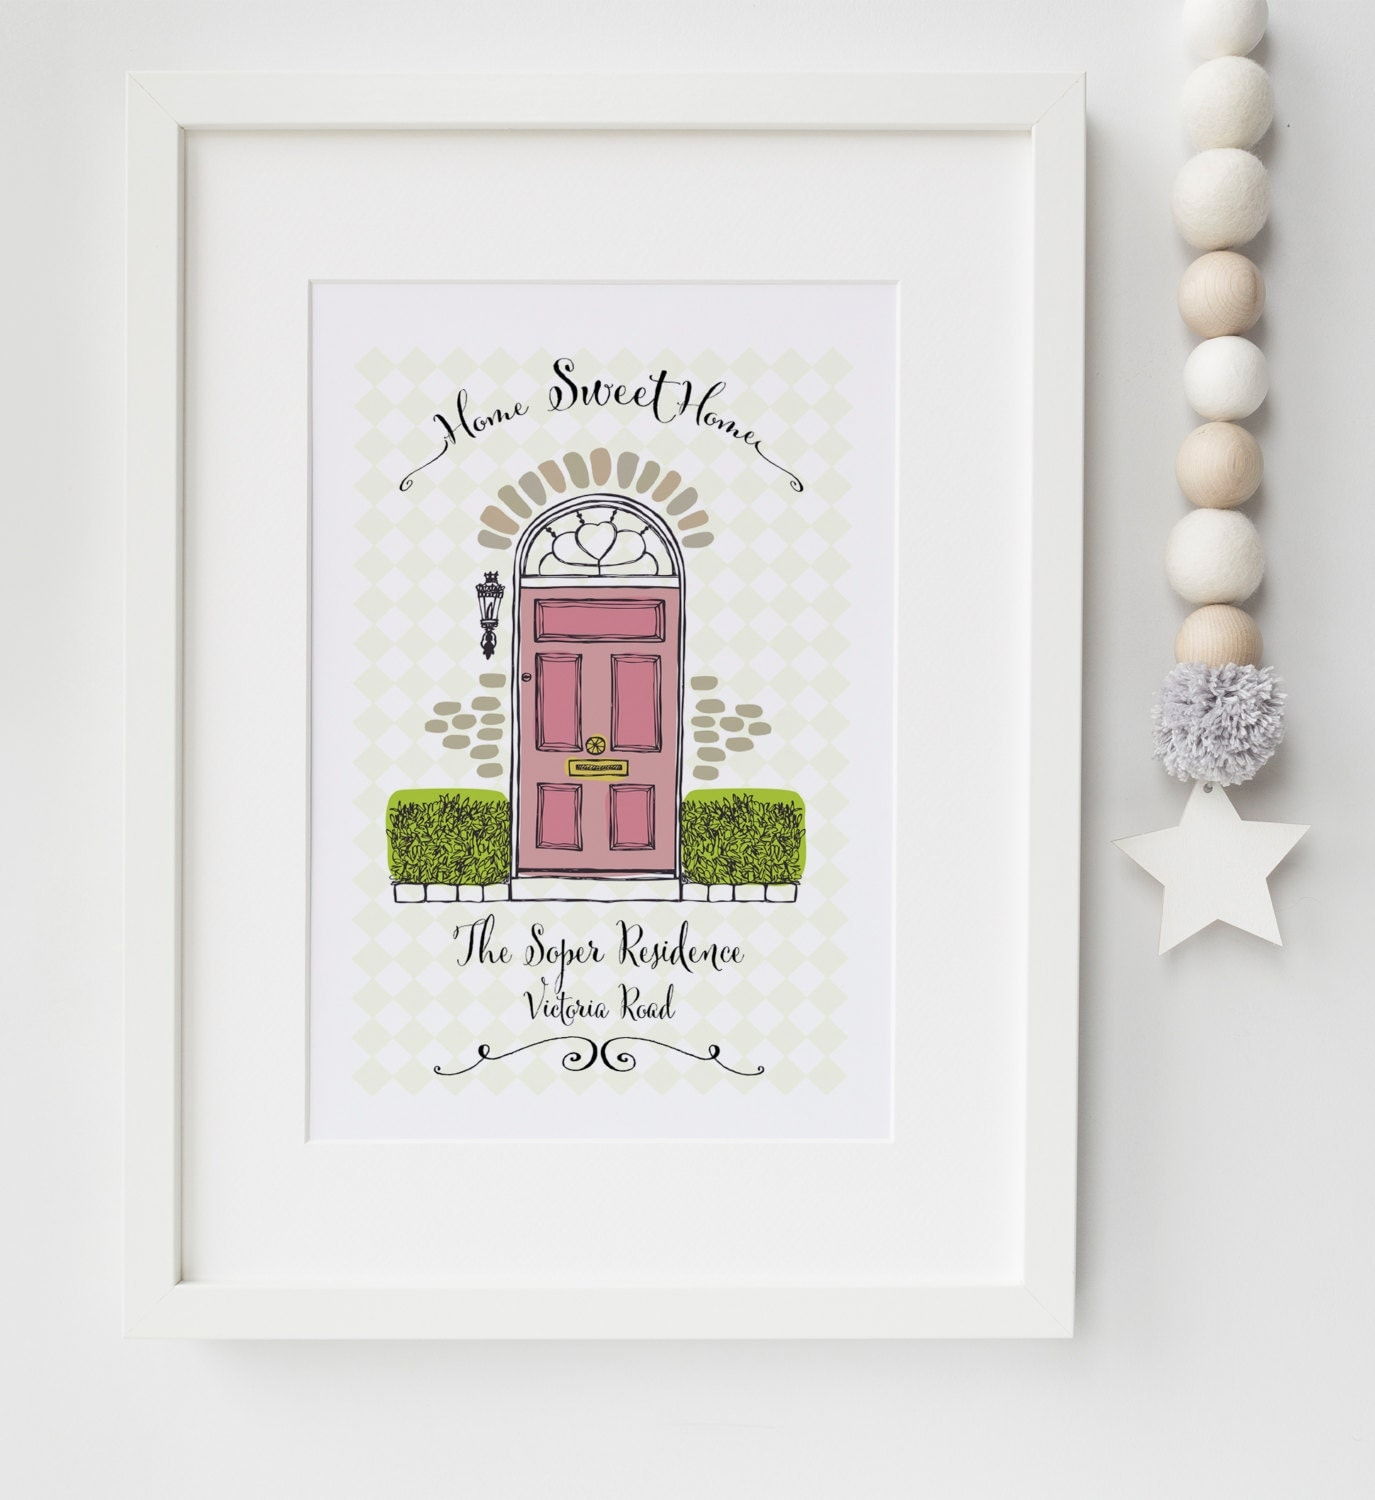 Personalised New Home House Warming Picture Print Memento Wall Art Moving In Gift Frame